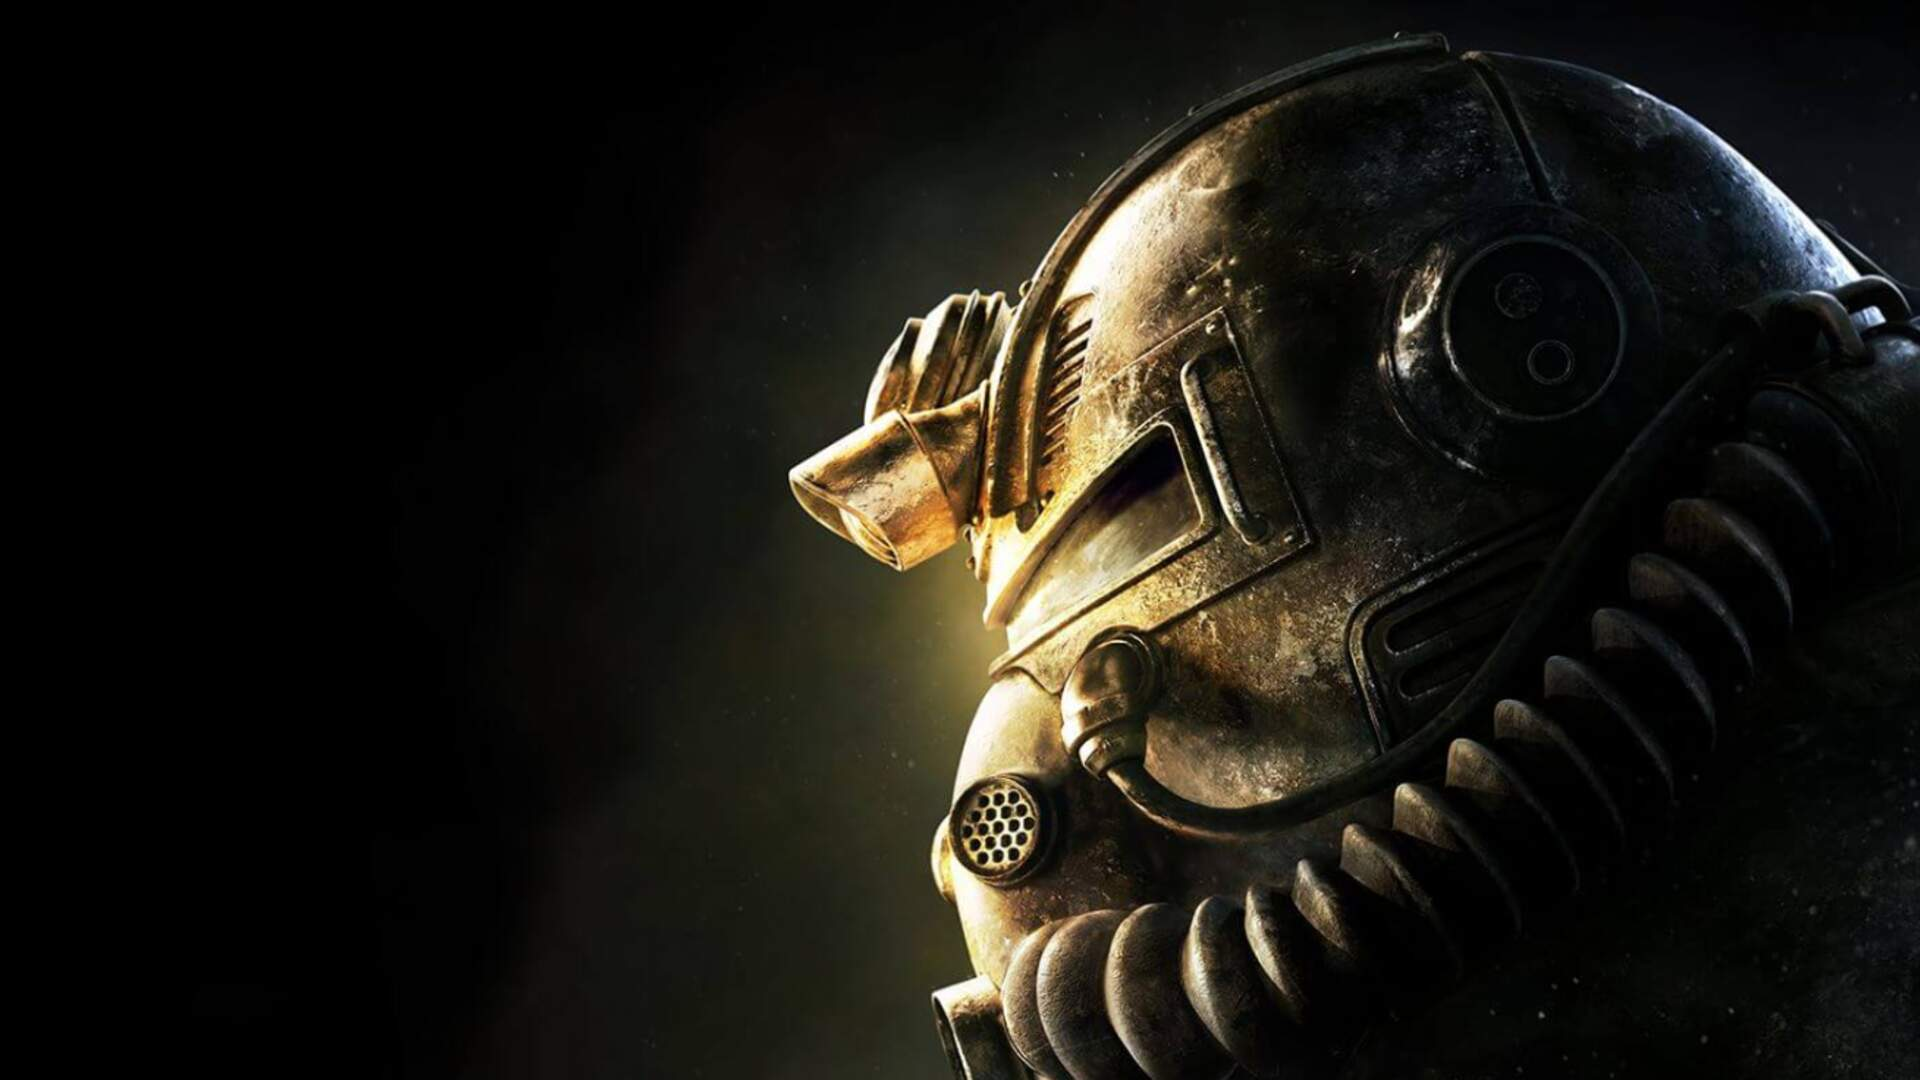 Fallout 76 is Skipping Steam